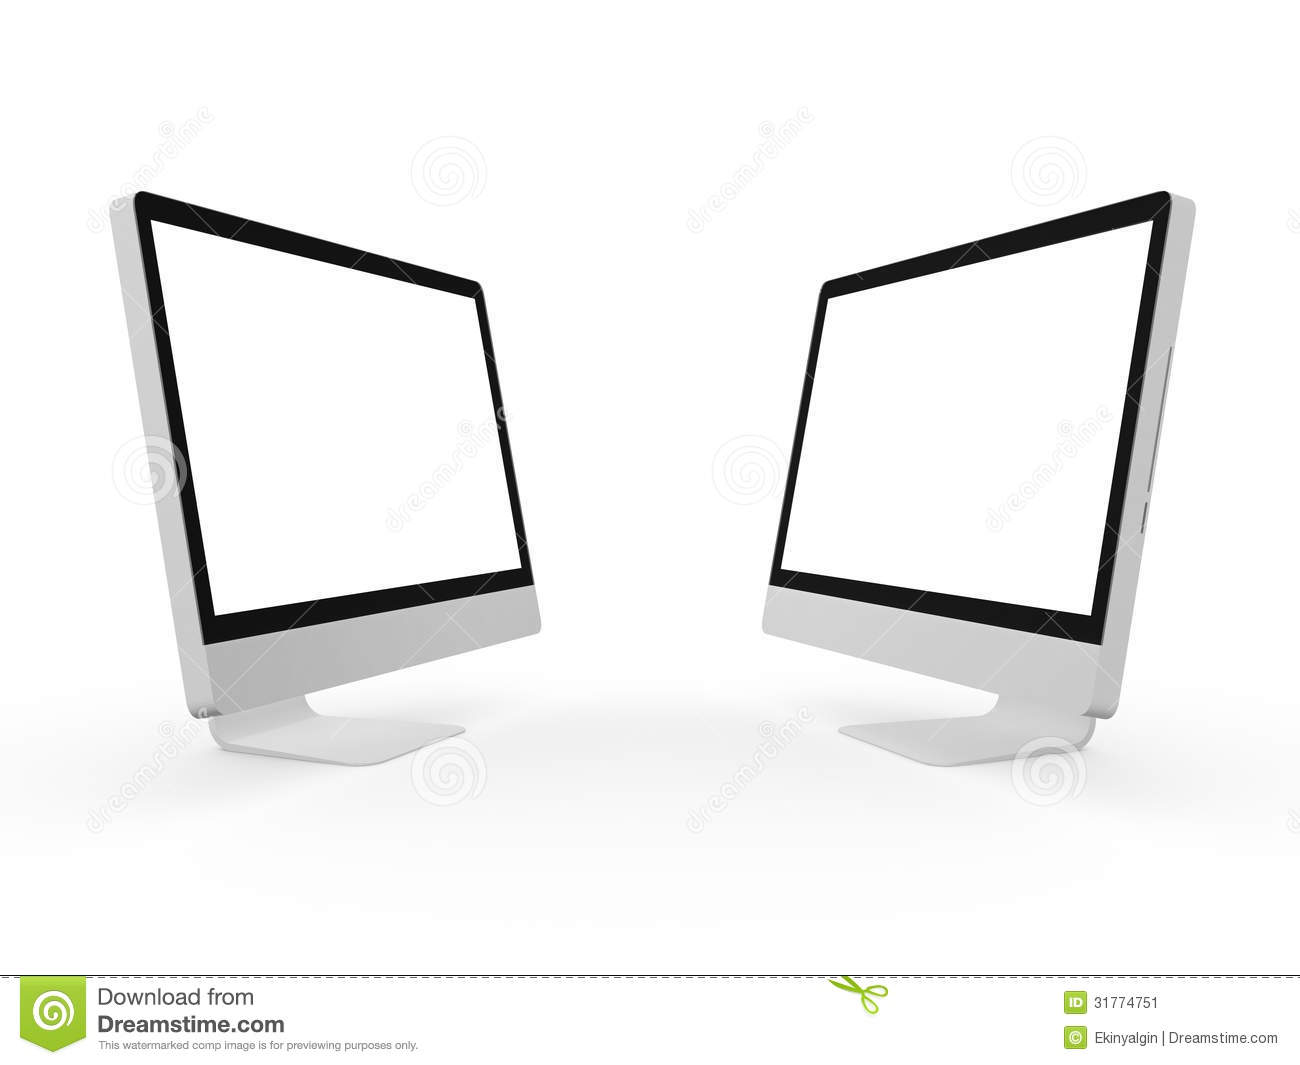 how to connect two computer screens